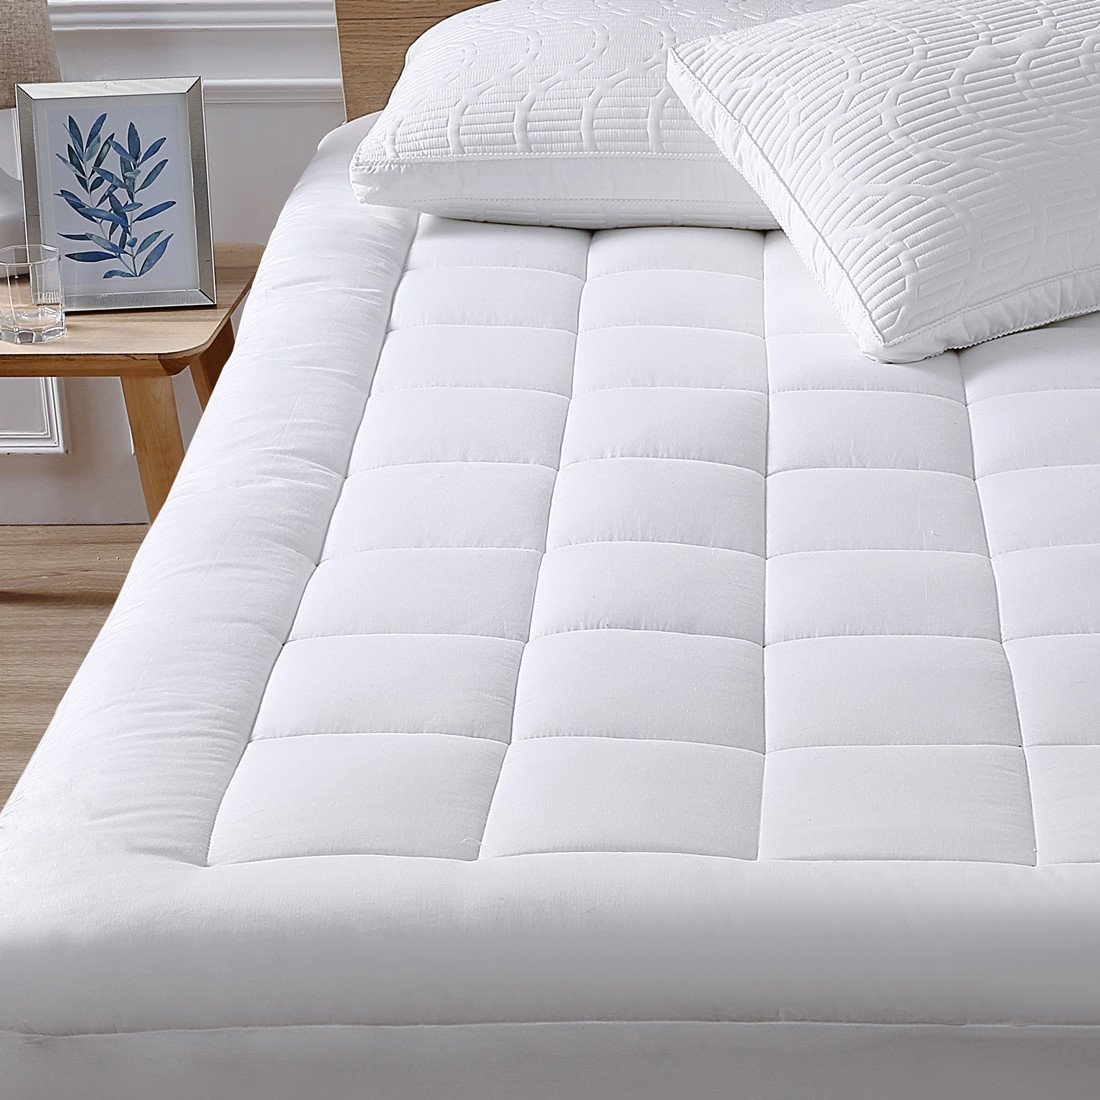 "Mattress Pad Cover-Cotton Top with Stretches to 18"" Deep Pocket Fits Up to 8""-21"" Cooling White Bed Topper"